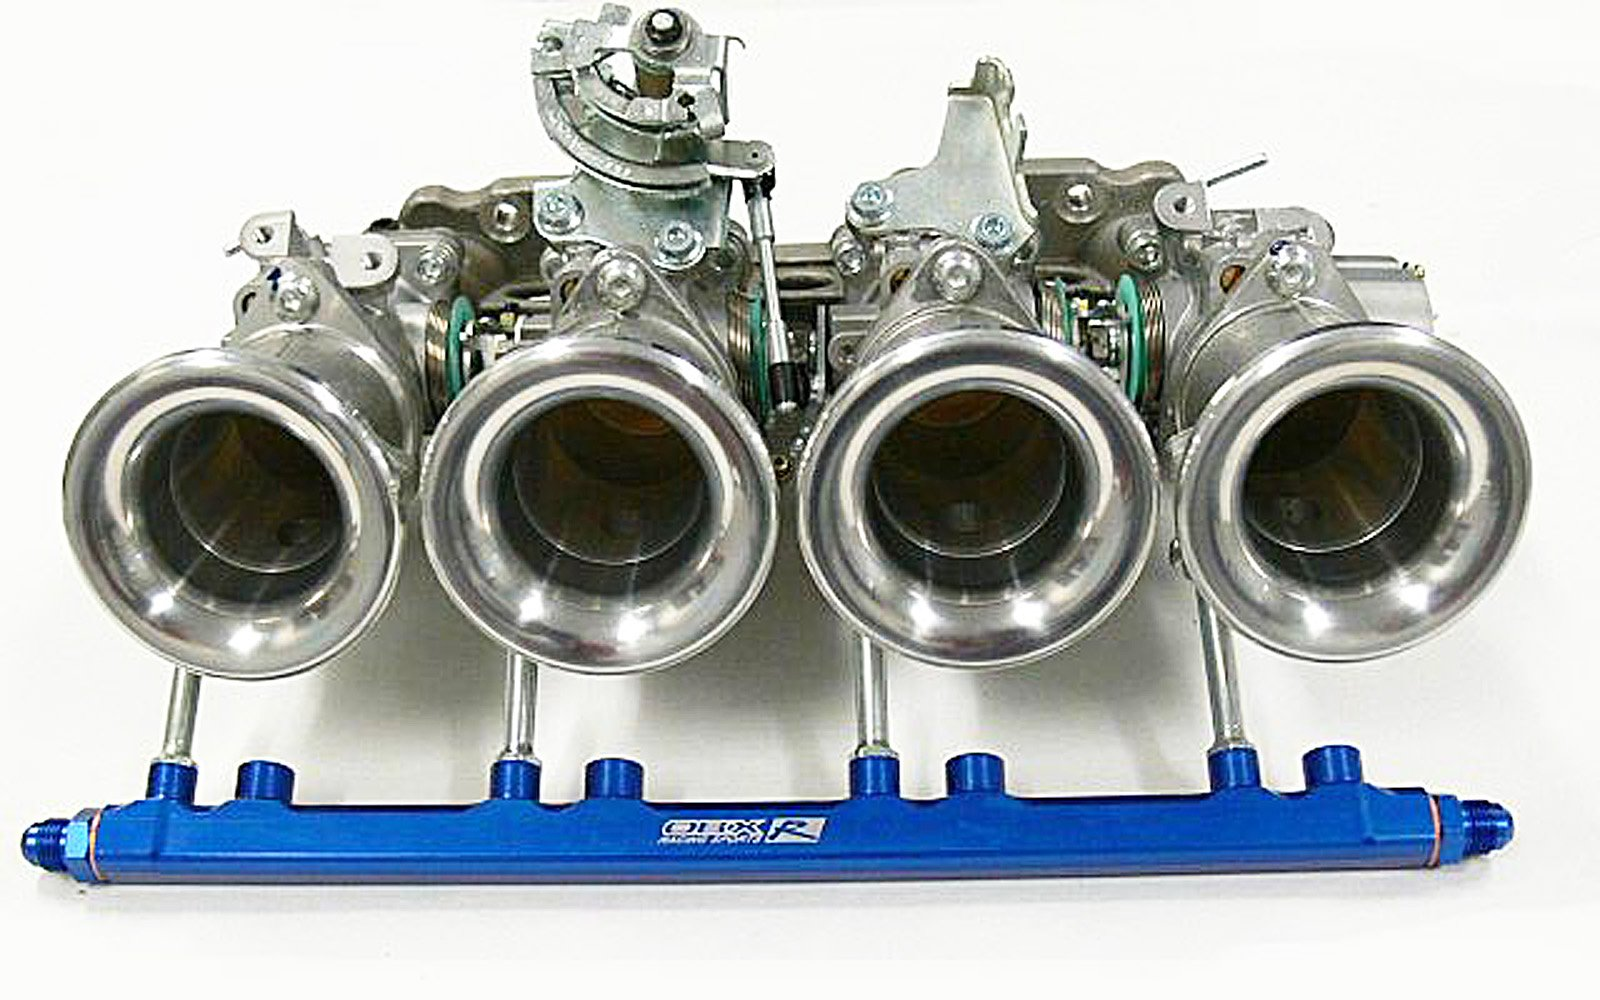 hight resolution of obx individual throttle body for 92 95 honda civic d16z6 itb